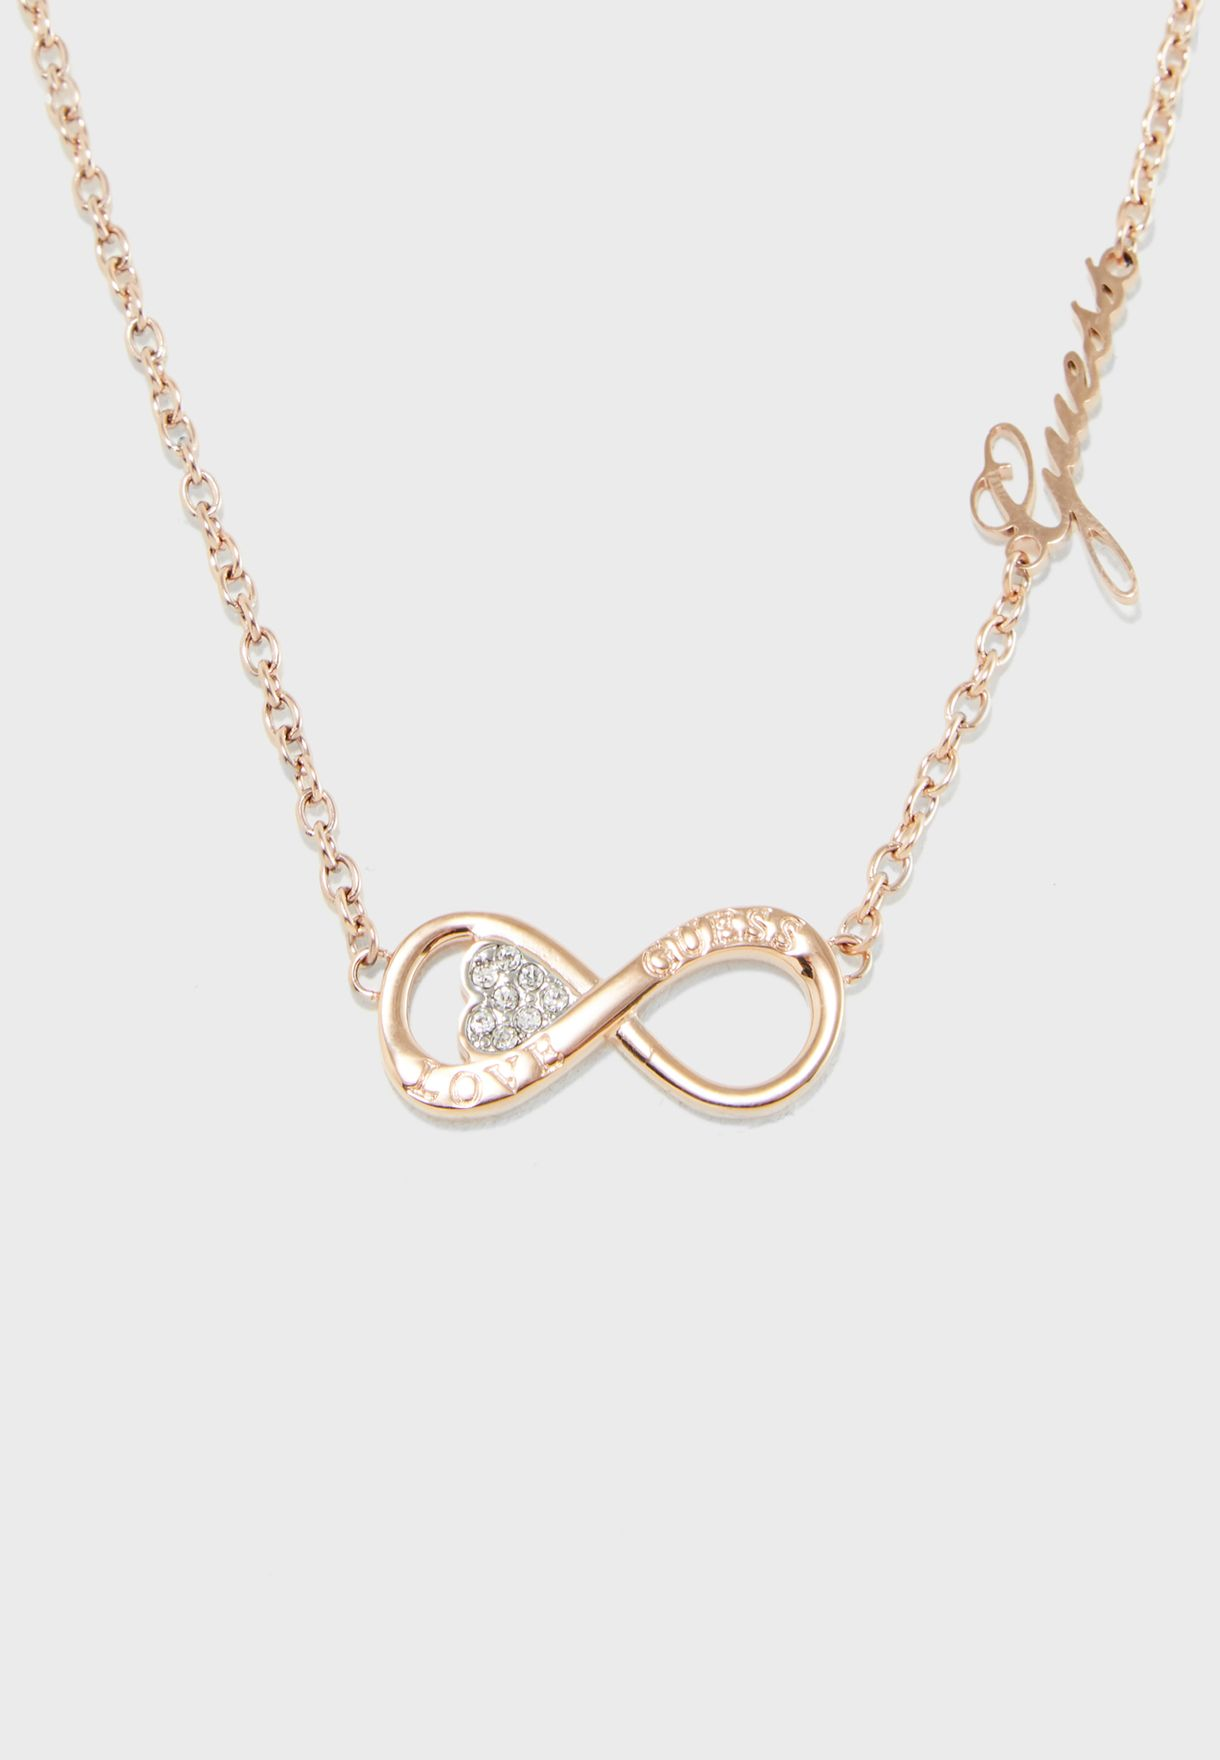 Horiz Infinity Necklace